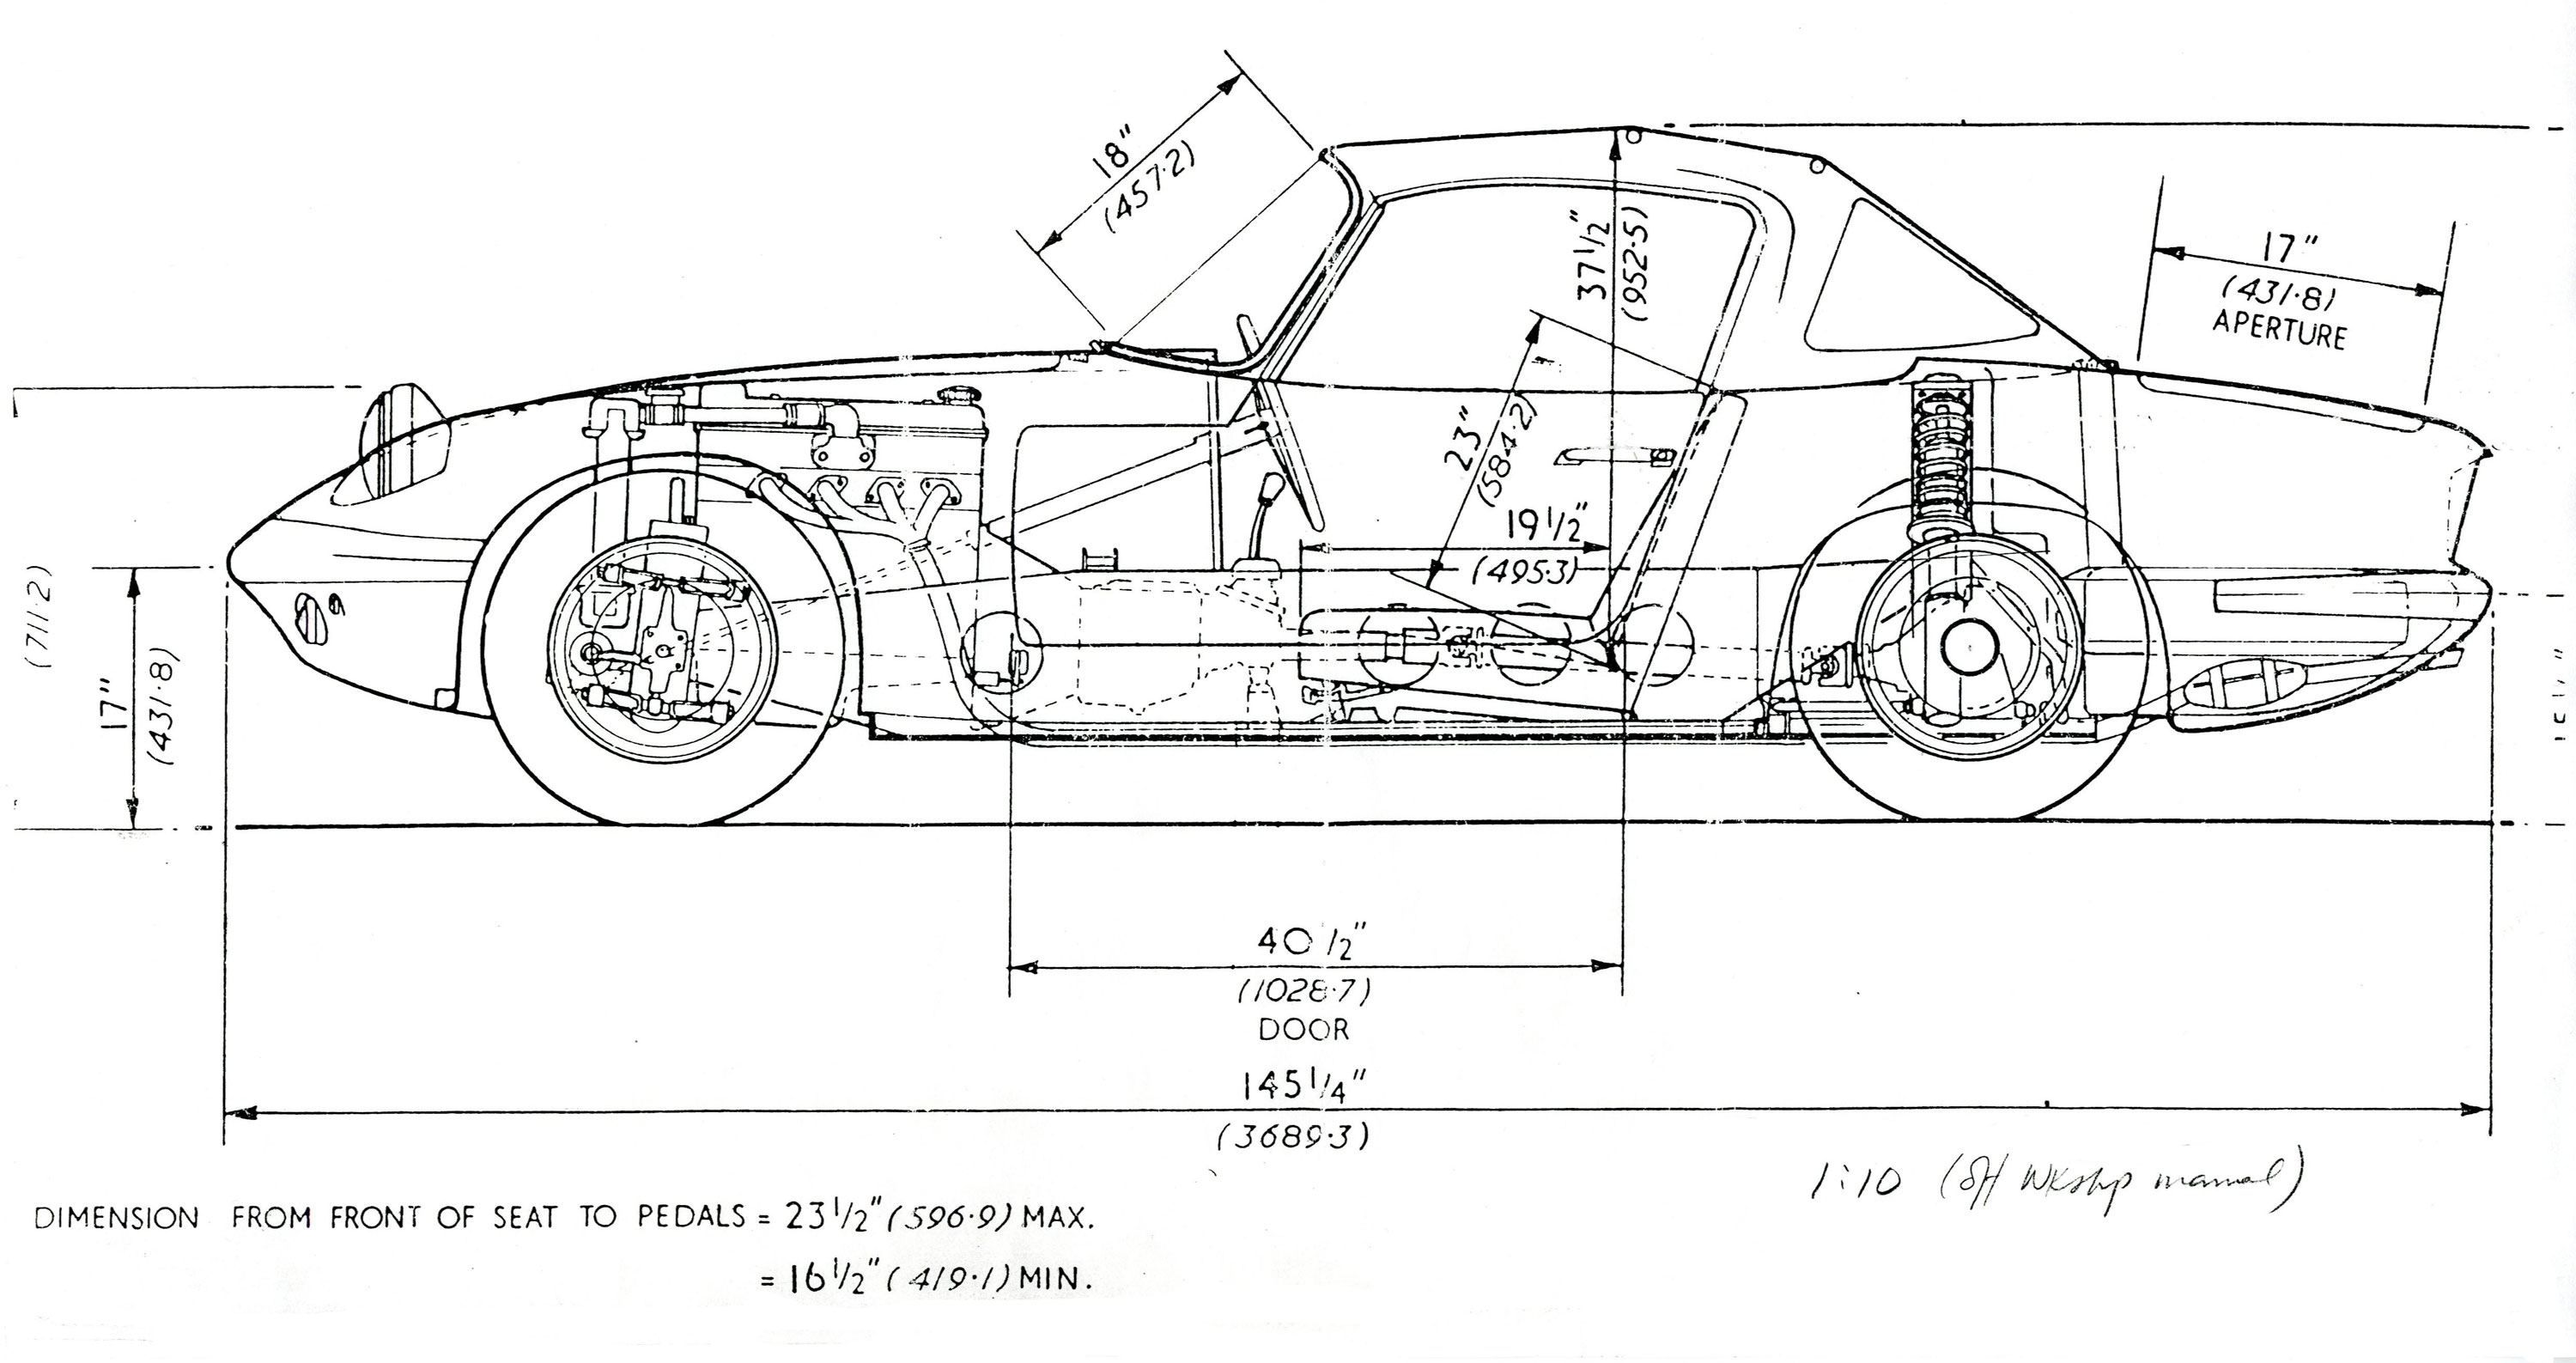 Lotus Elan design sketch